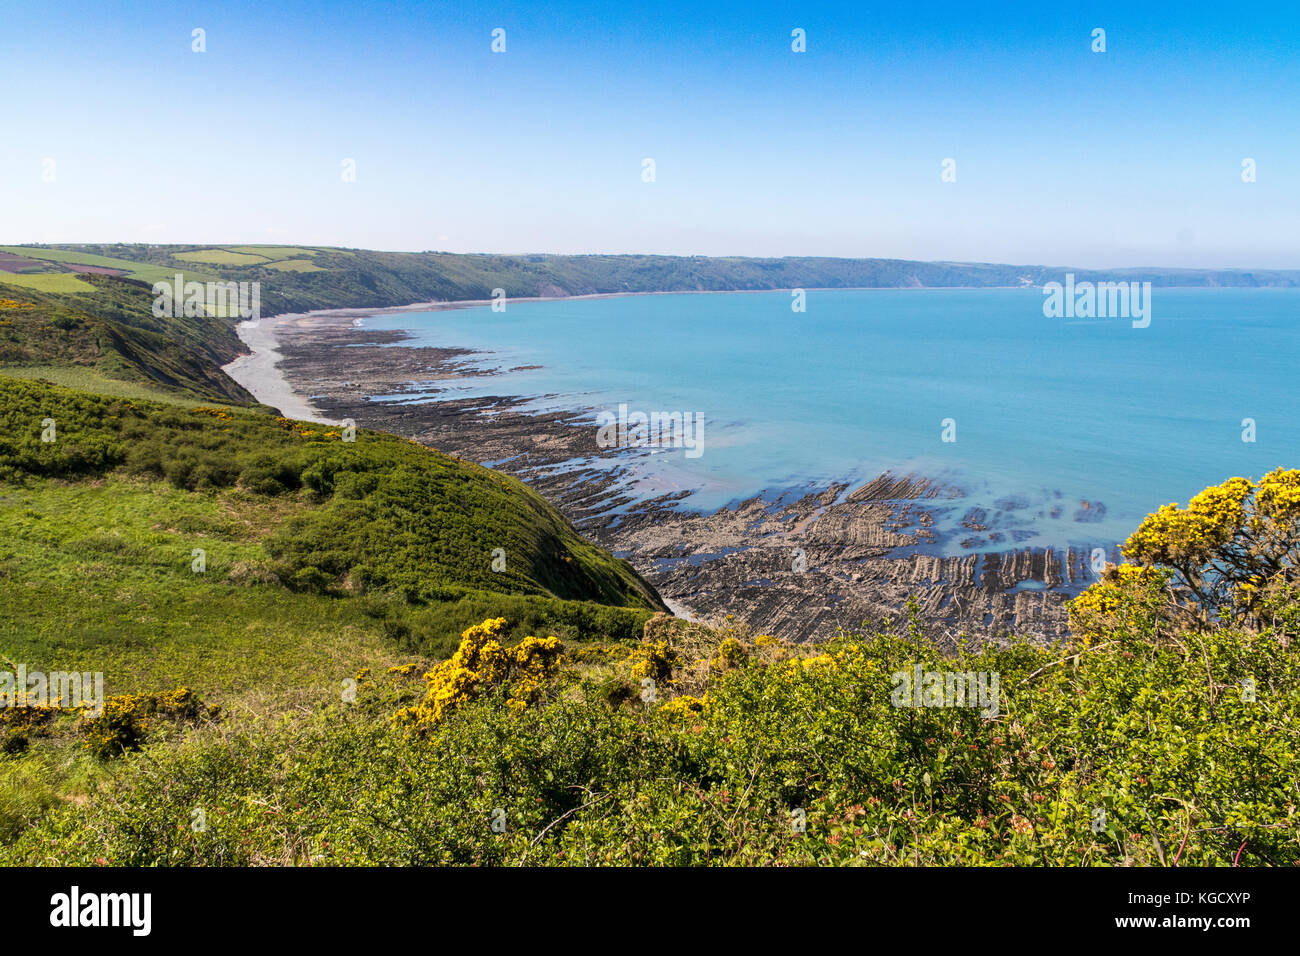 View Looking Down on Babbacombe Beach and North Devon Coastline at Low Tide. South West Coast Path, Near Bucks Mills, - Stock Image